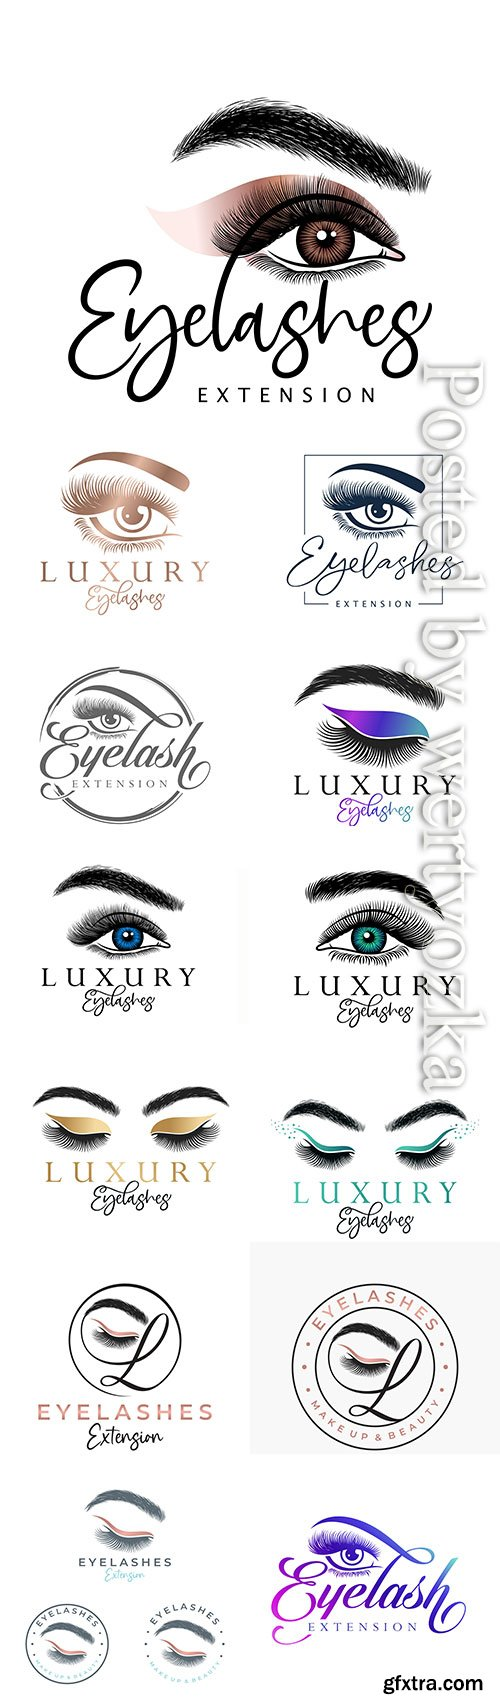 Luxury beauty eyelash logo design